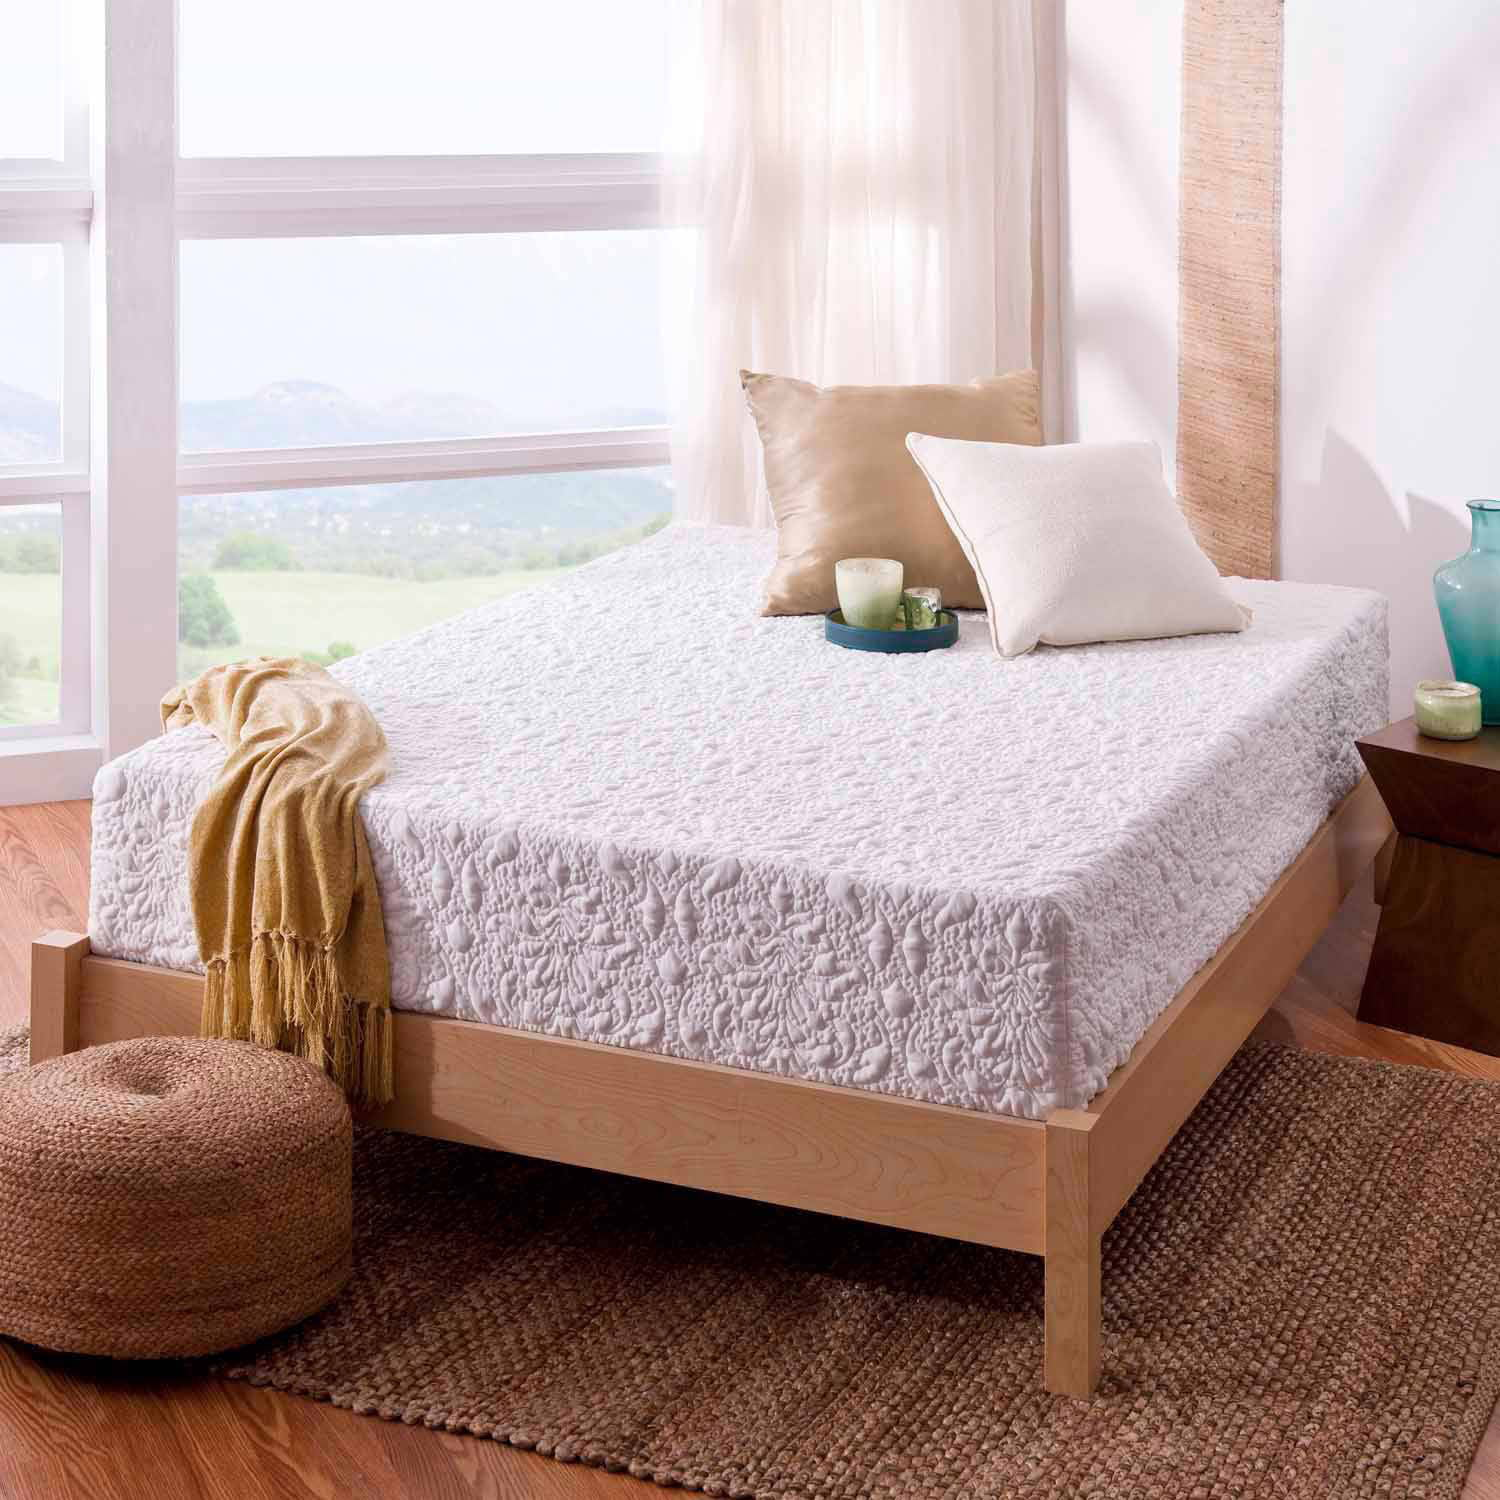 Trend Spa Sensations Theratouch Memory Foam Mattress Multiple Sizes Walmart